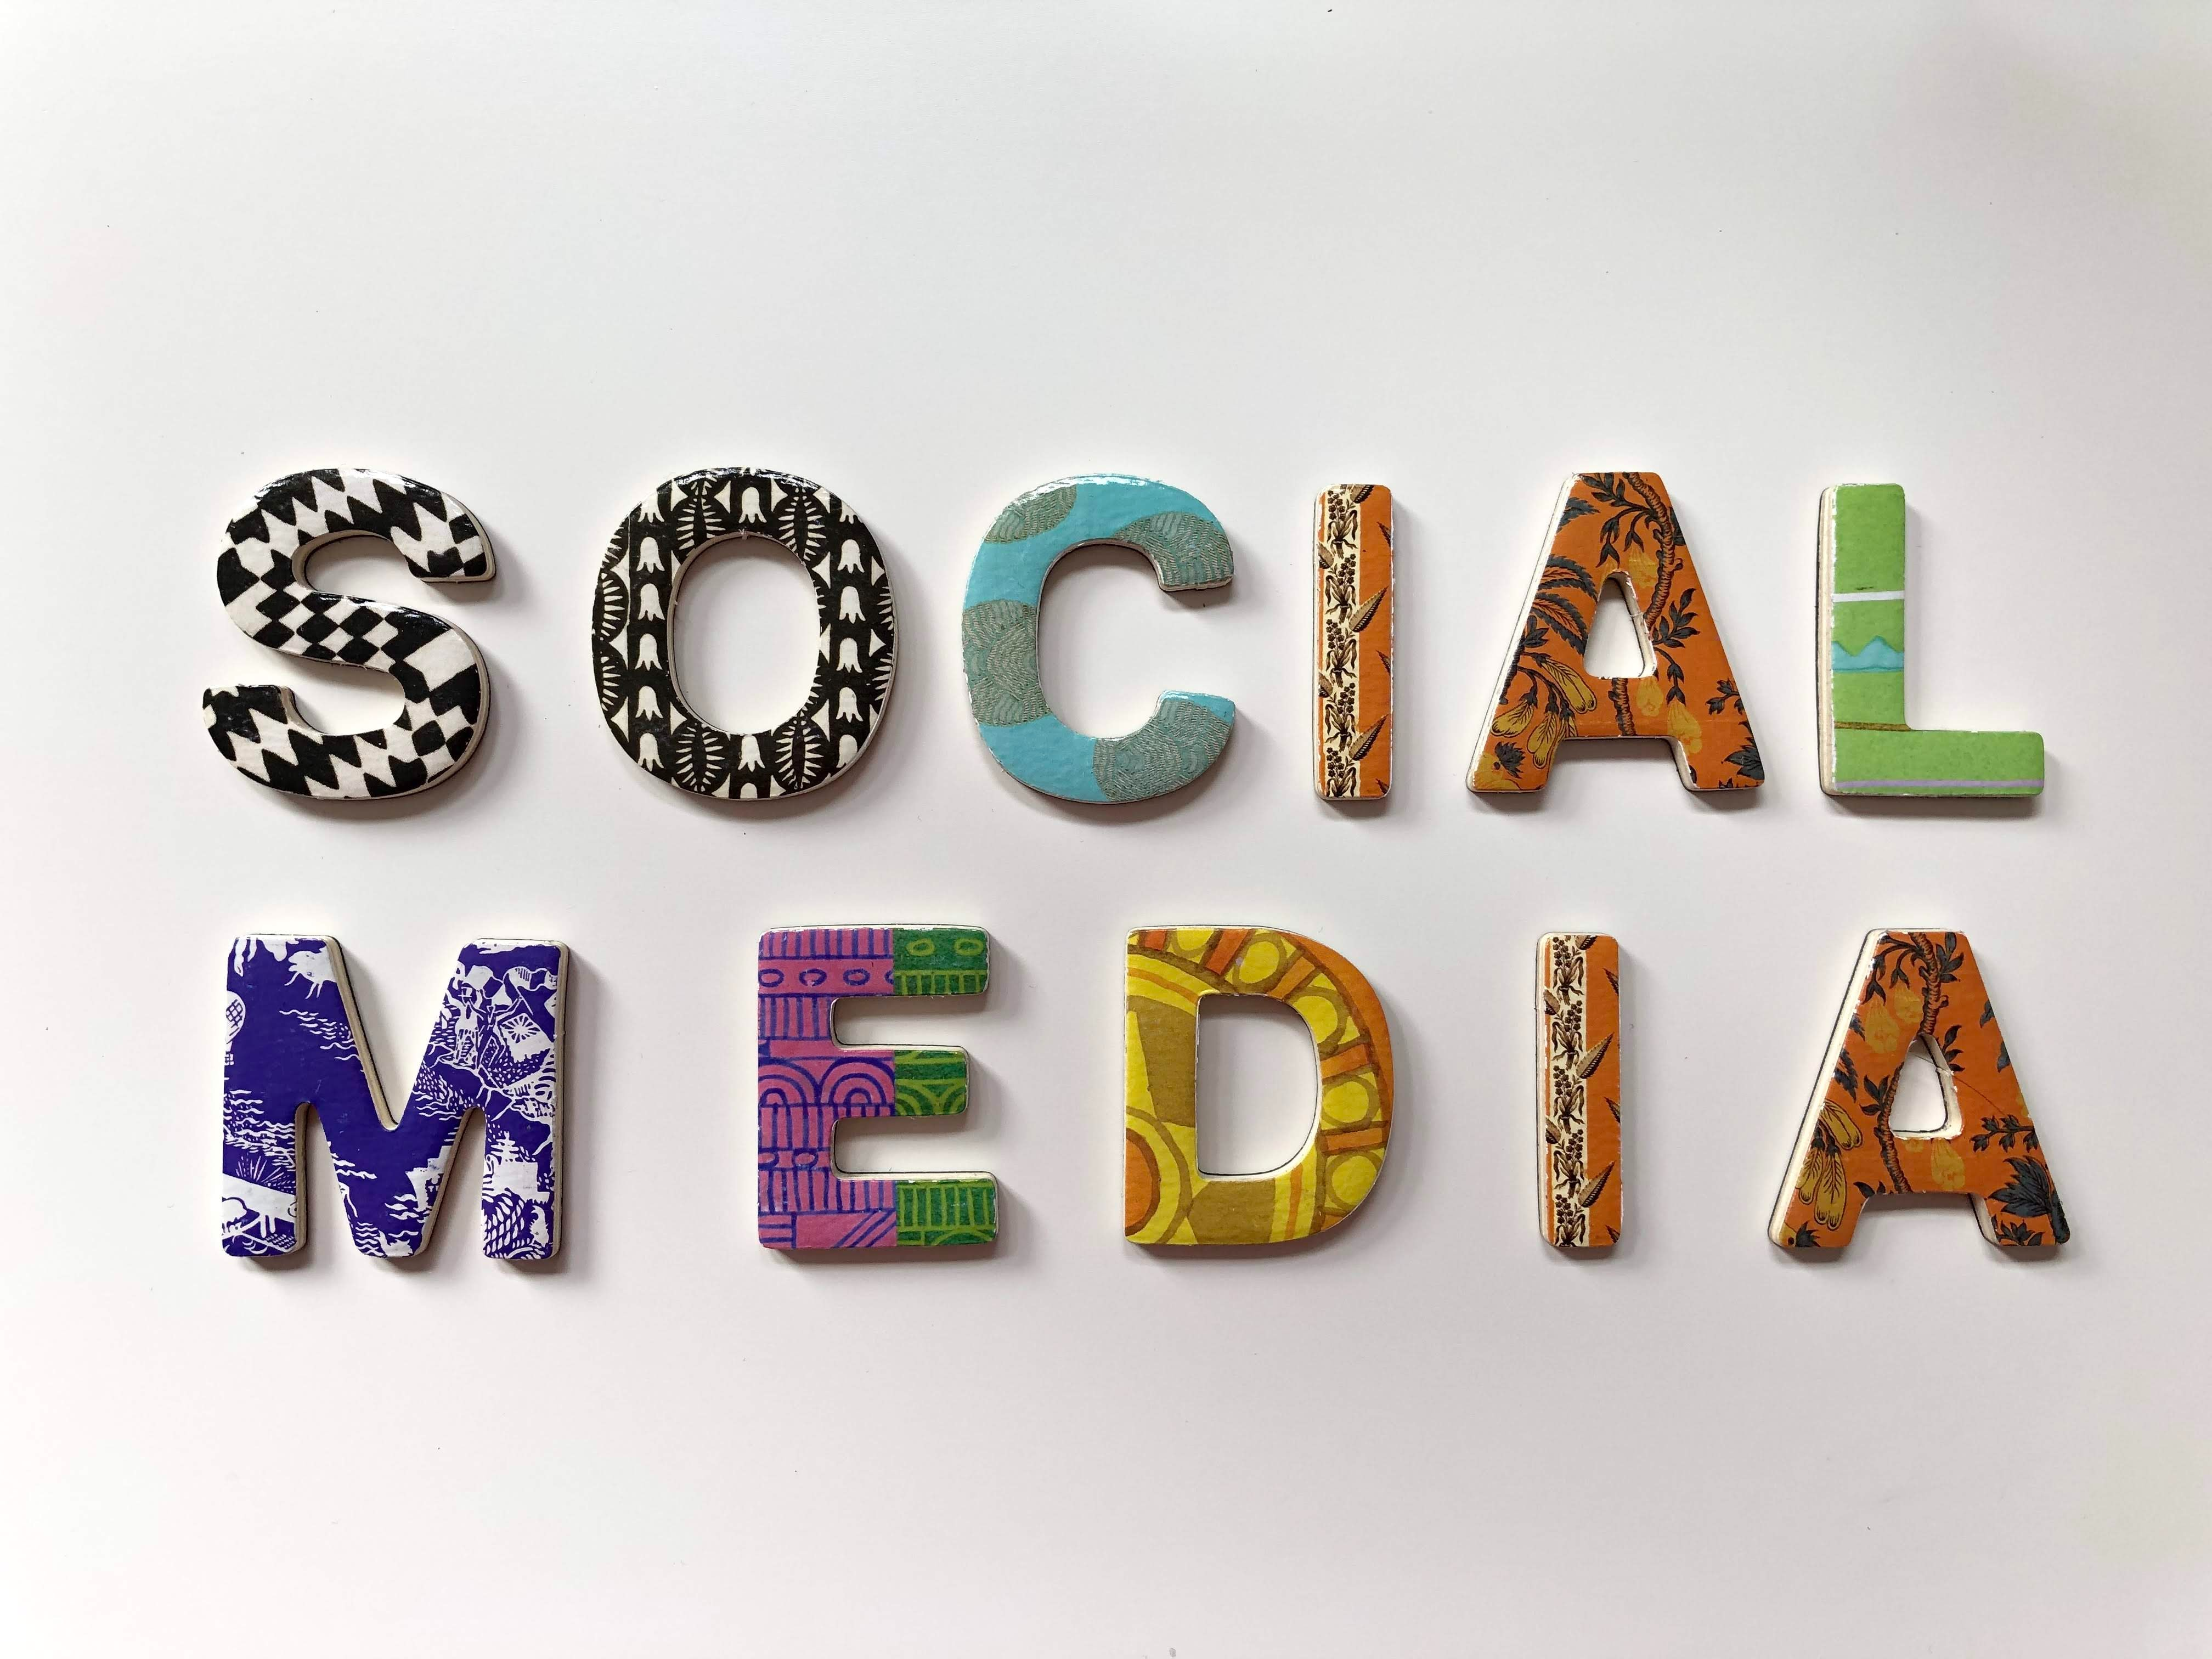 Here Are Top Ten Ways to Restore Your Social Media Reputation